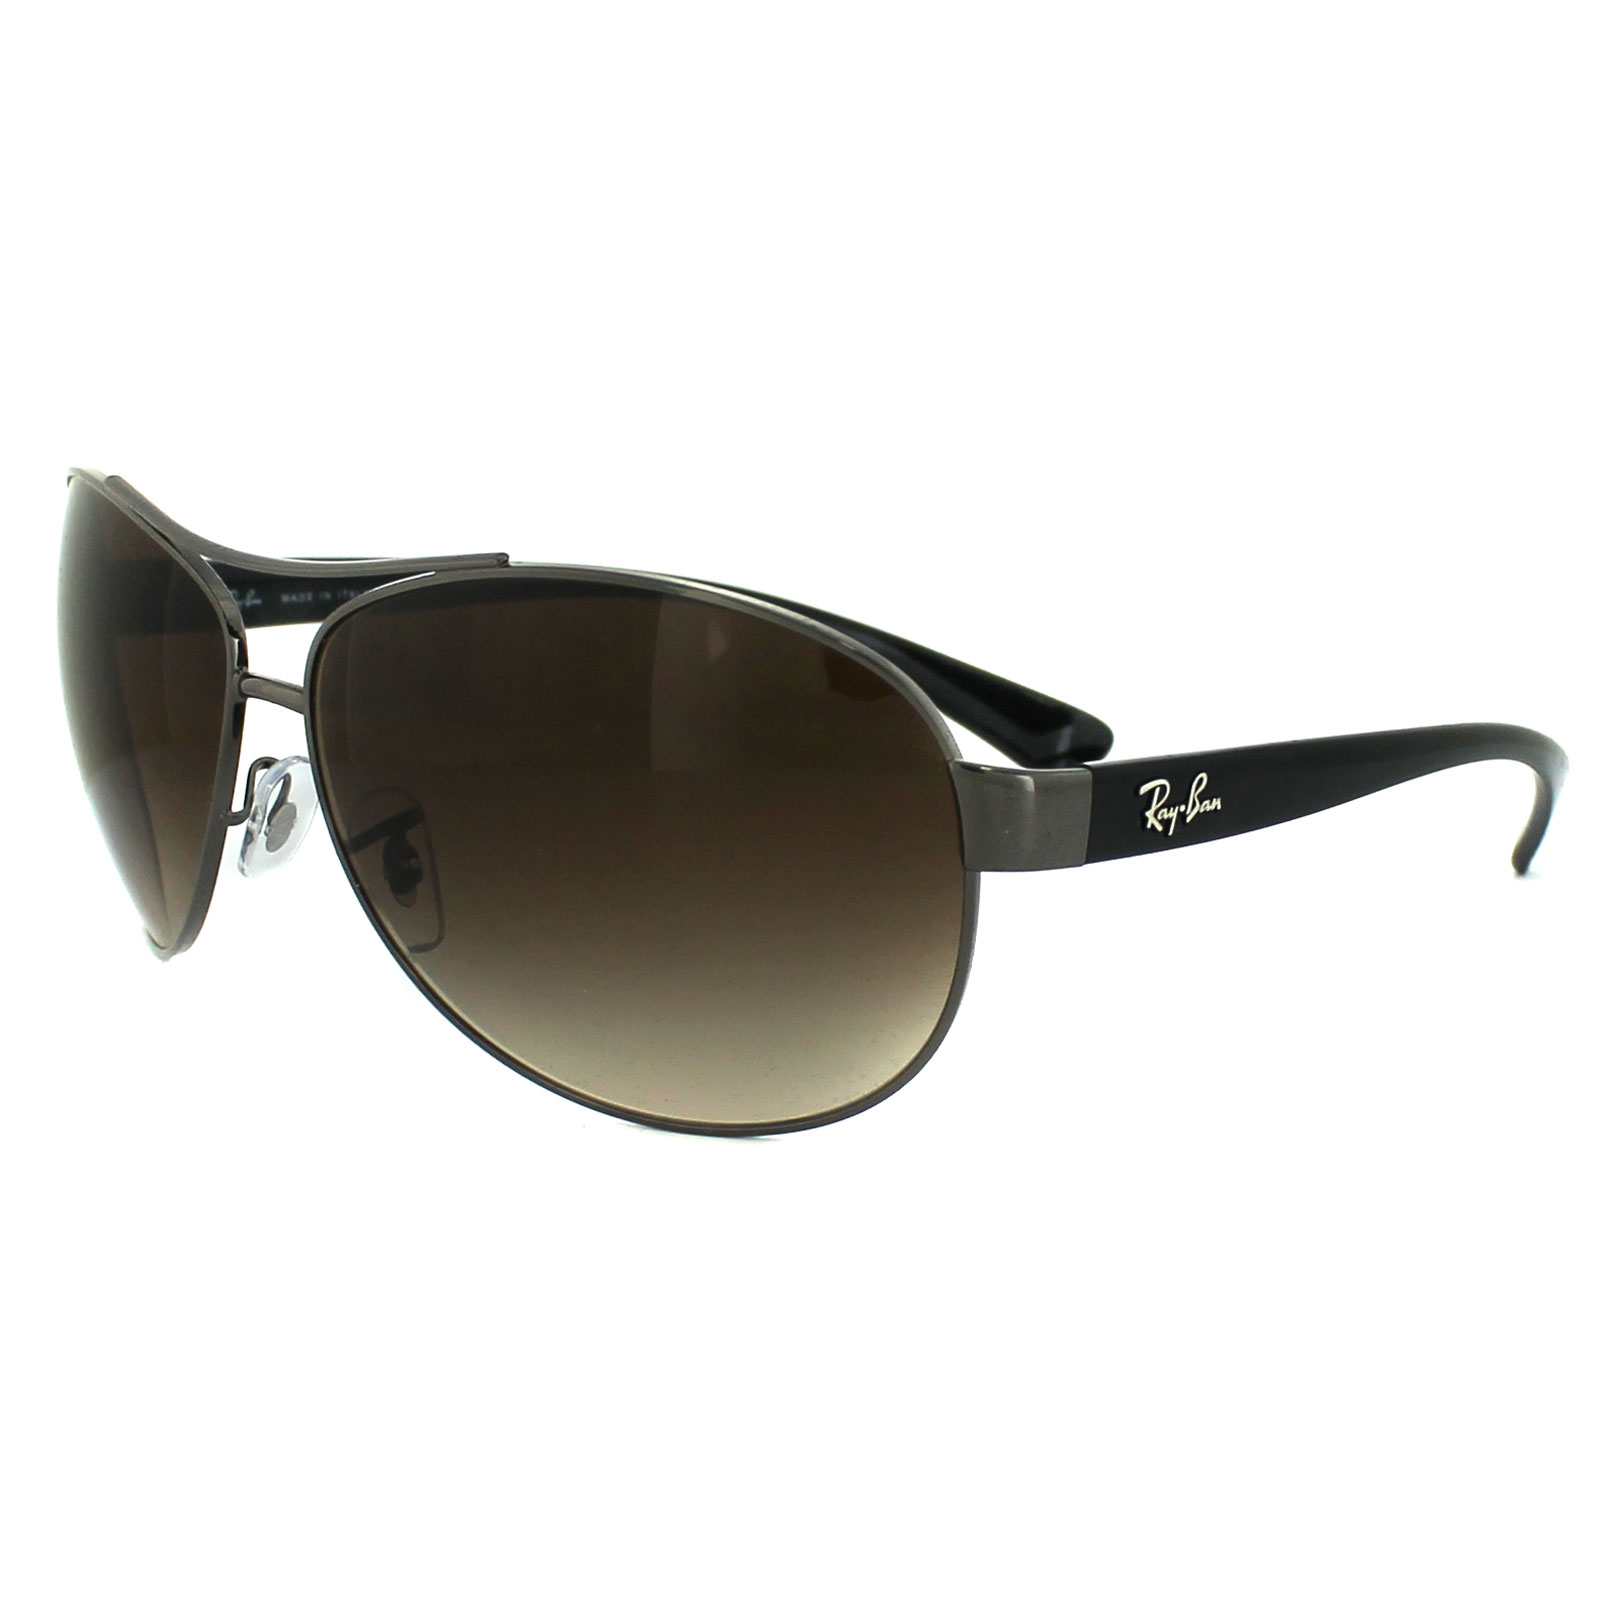 Zrm9ho6ghubfkns Ray Ban Clearance Outlet